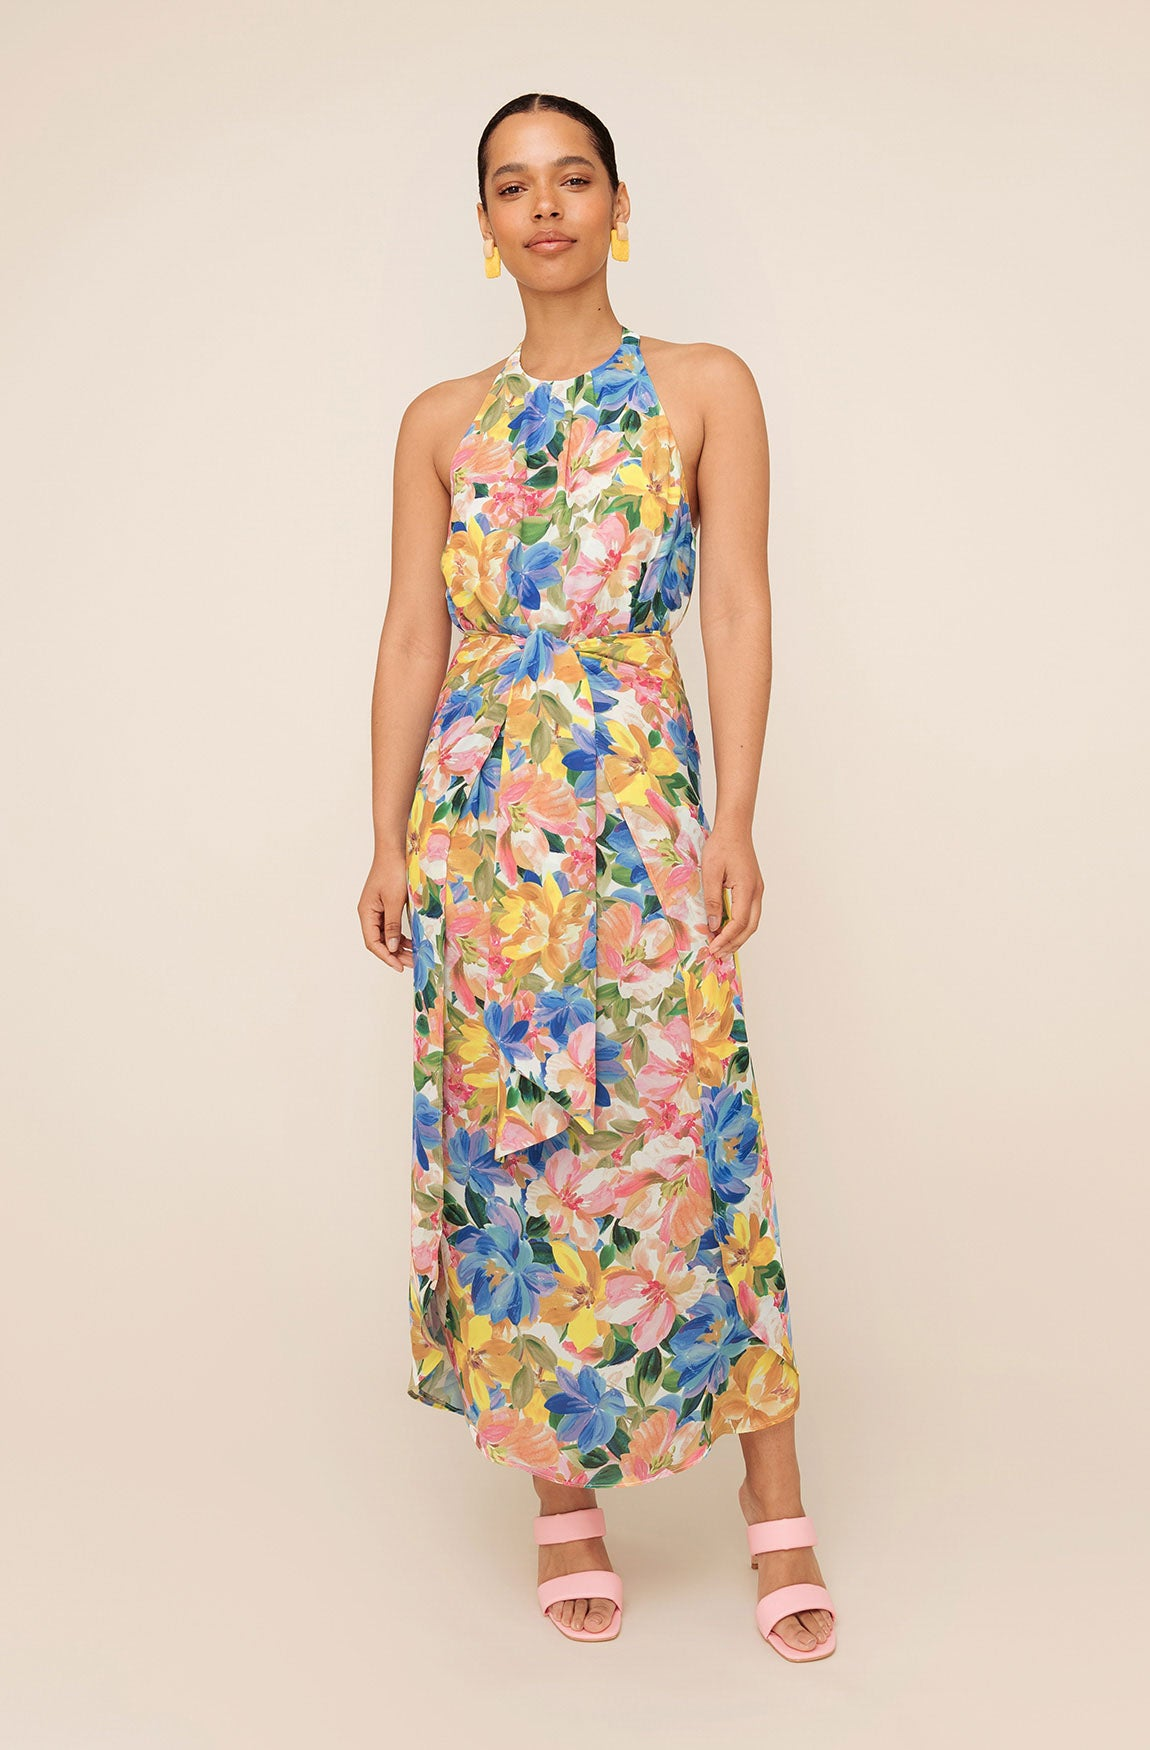 UTOPIA FLORAL DRESS